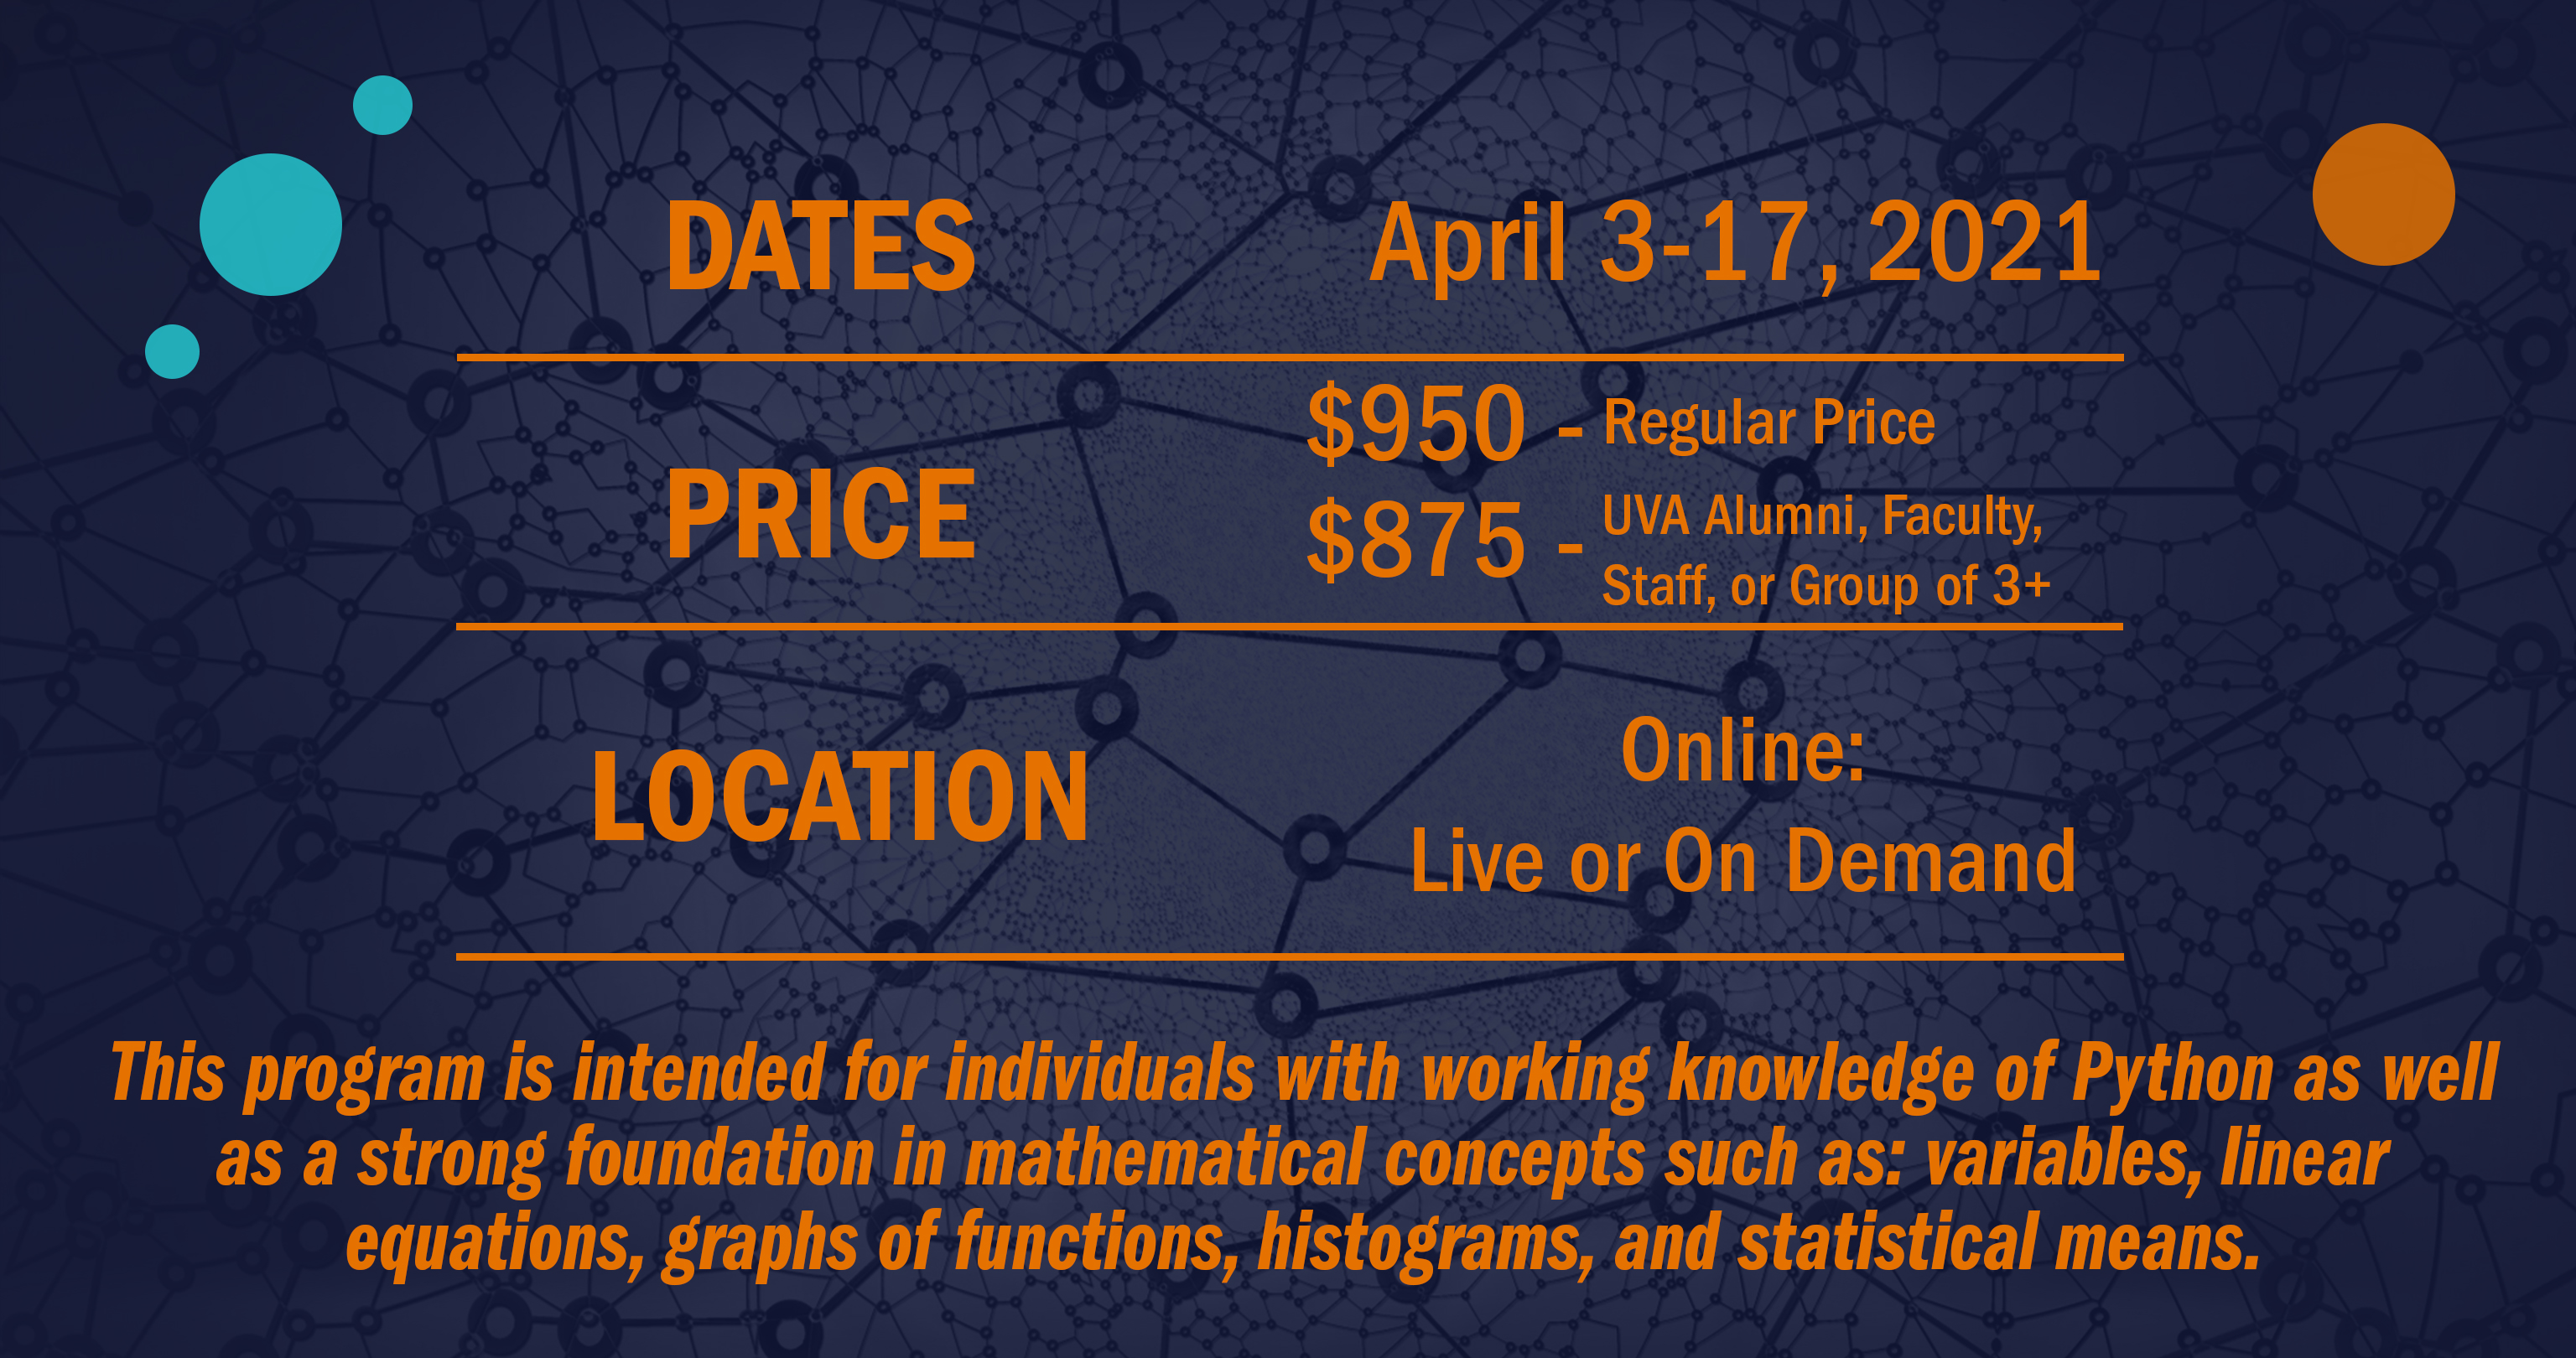 Image with program details: Date April 3-17, 2021. Price 950 - regular price. 875 - UVA Alumni, Faculty, Staff, or Group of 3 +. Location: Online - Live or On Demand. This program is intended for individuals with working knowledge of Python as well as a strong foundation in mathematical concepts such as: variables, linear equations, graphs of functions, histograms, and statistical means.